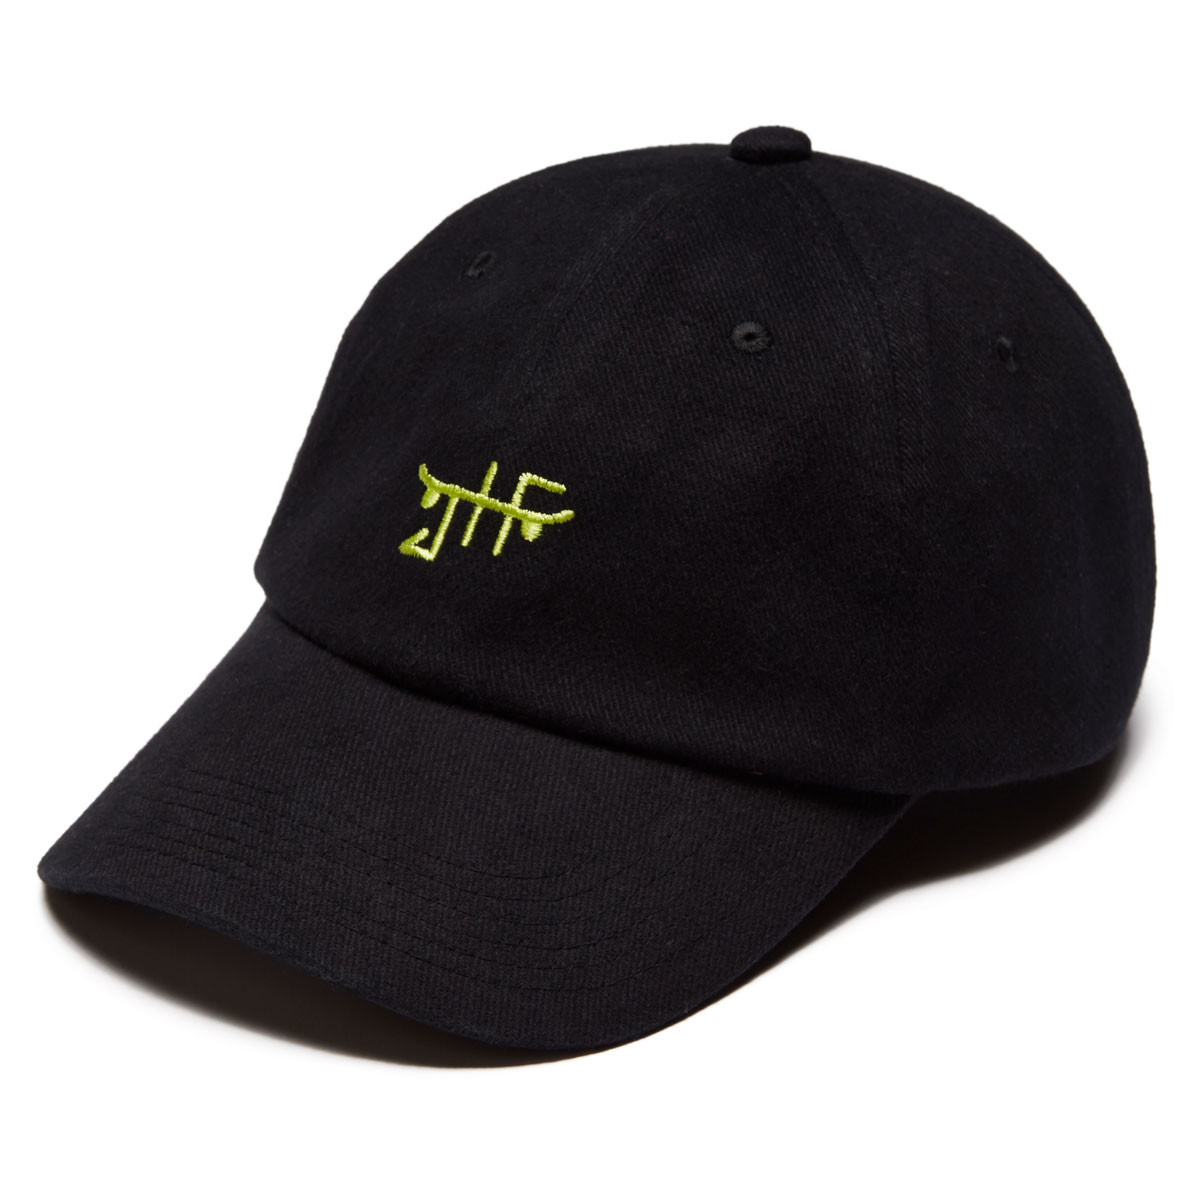 4d3cd980f8c861 Just Have Fun Classic Skate Dad Hat Hat - Black /Neon Green